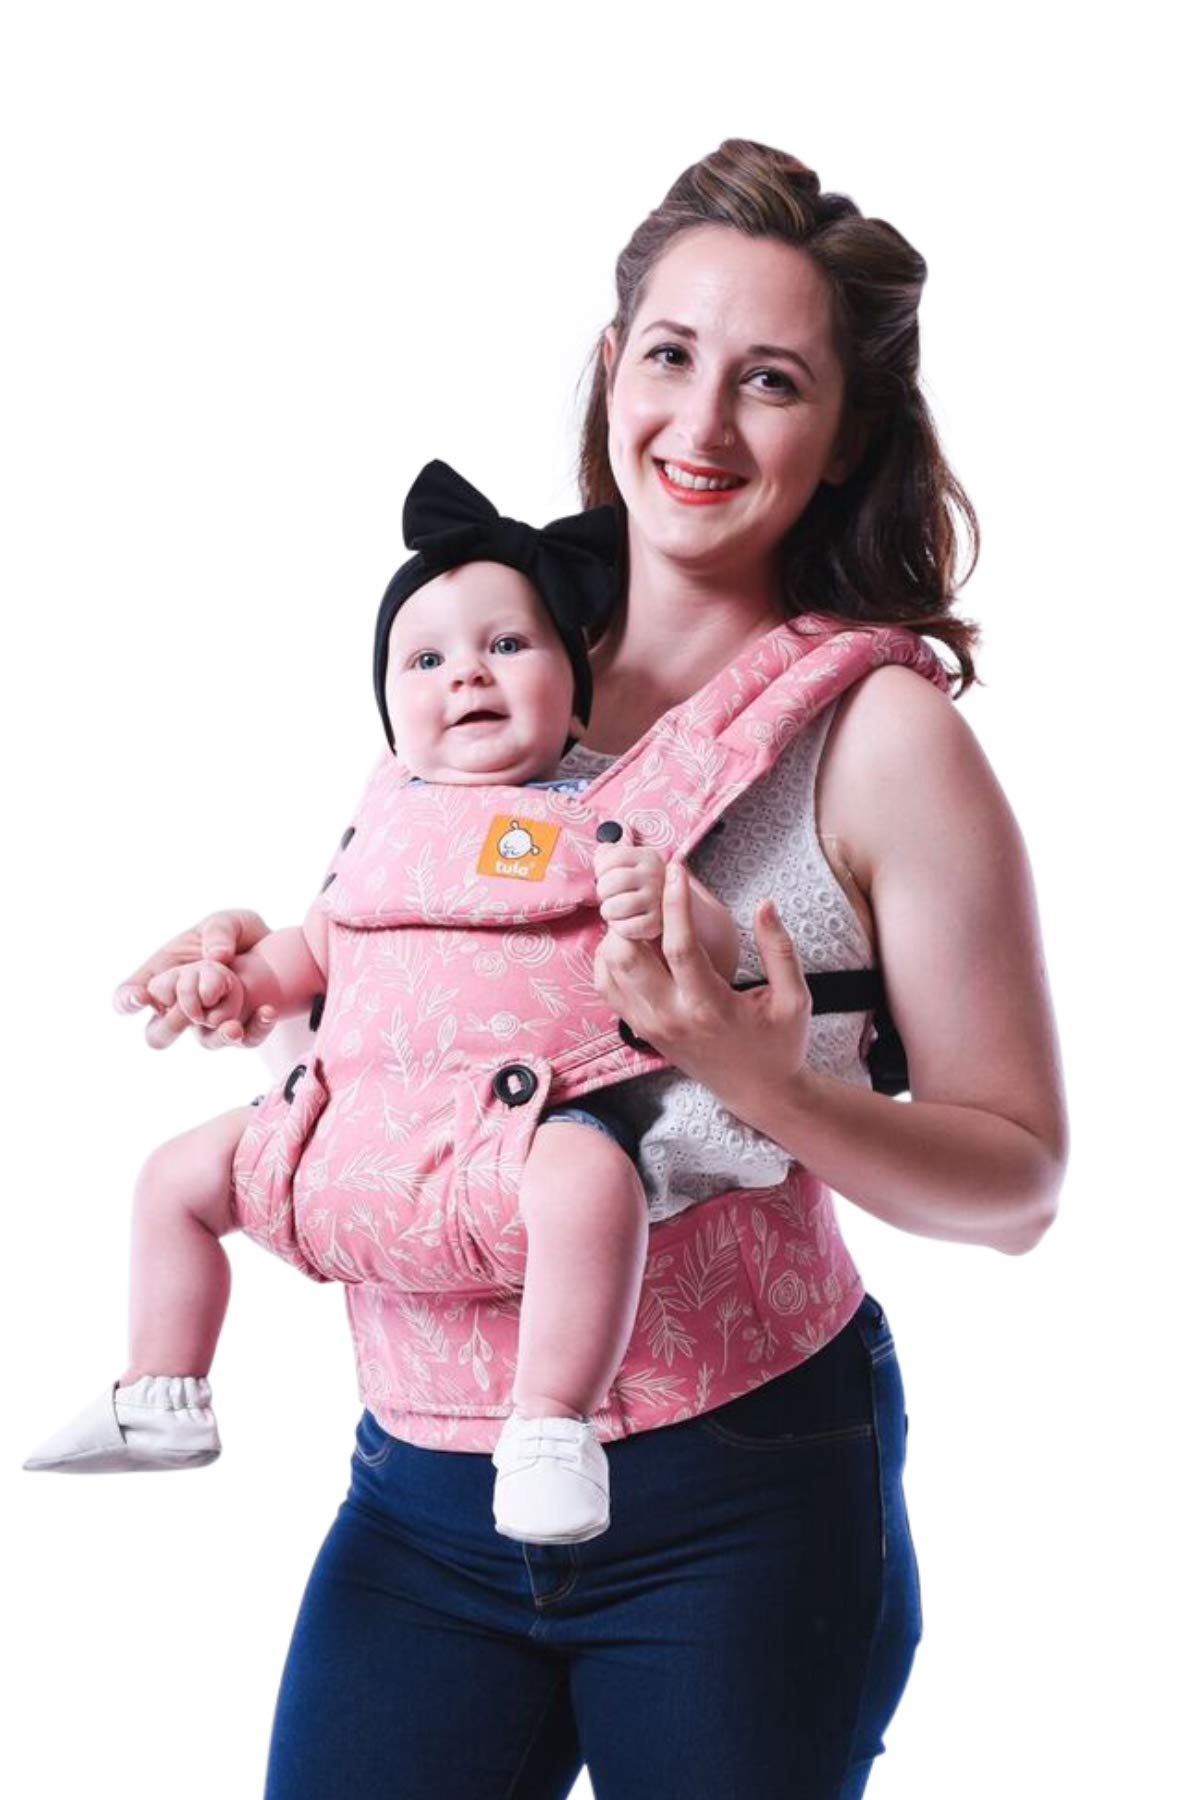 Baby Tula Explore Baby Carrier 3.2 - 20.4 kg, Adjustable Newborn to Toddler Carrier, Multiple Ergonomic Positions, Front and Back Carry, Easy-to-Use, Lightweight - Bloom, Pink and White Floral Tula  1